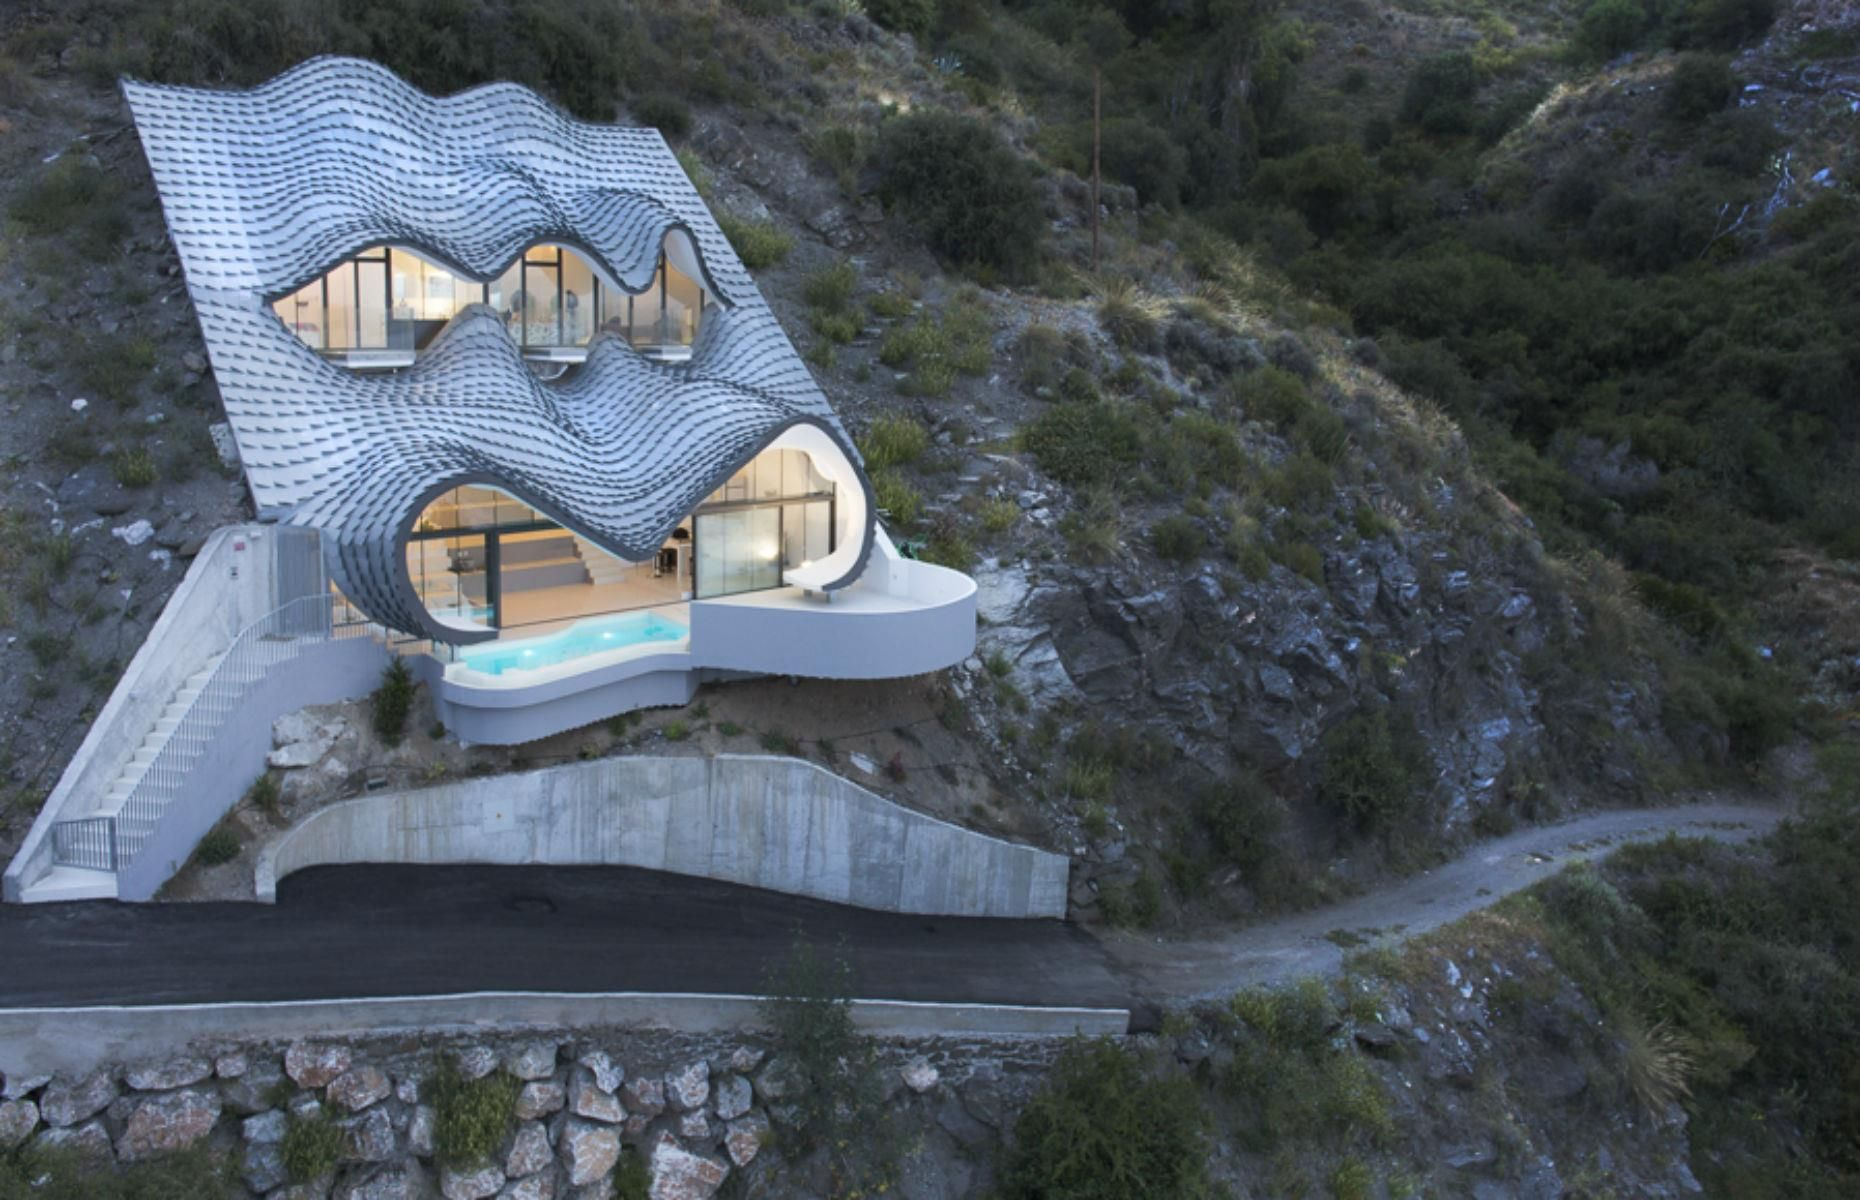 The World S Most Incredible Homes Futuristic Home Cliff House Zinc Roof